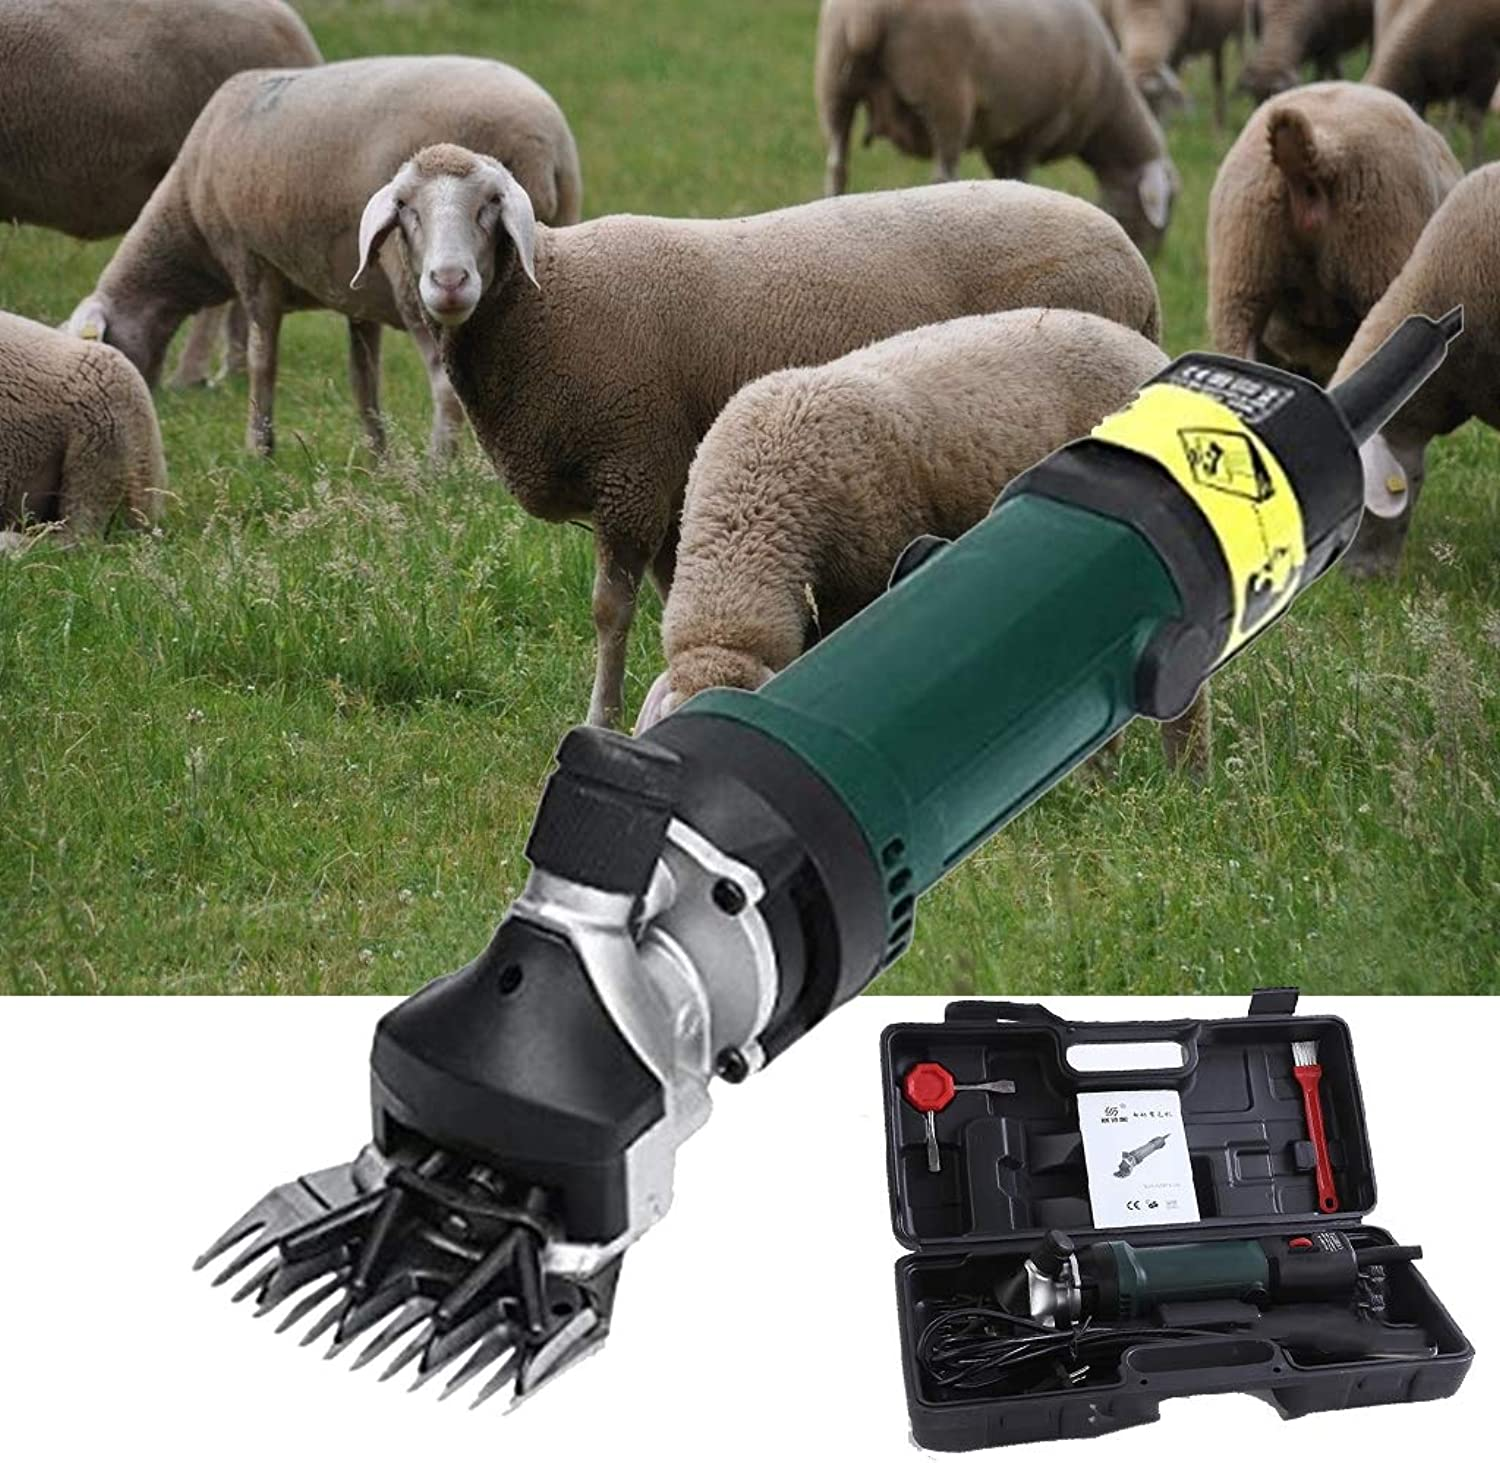 LXJLD 320W Sheep Shears Goat Clippers Animal Shave Grooming Farm Supplies Livestock Sheep Shears for Grooming,B